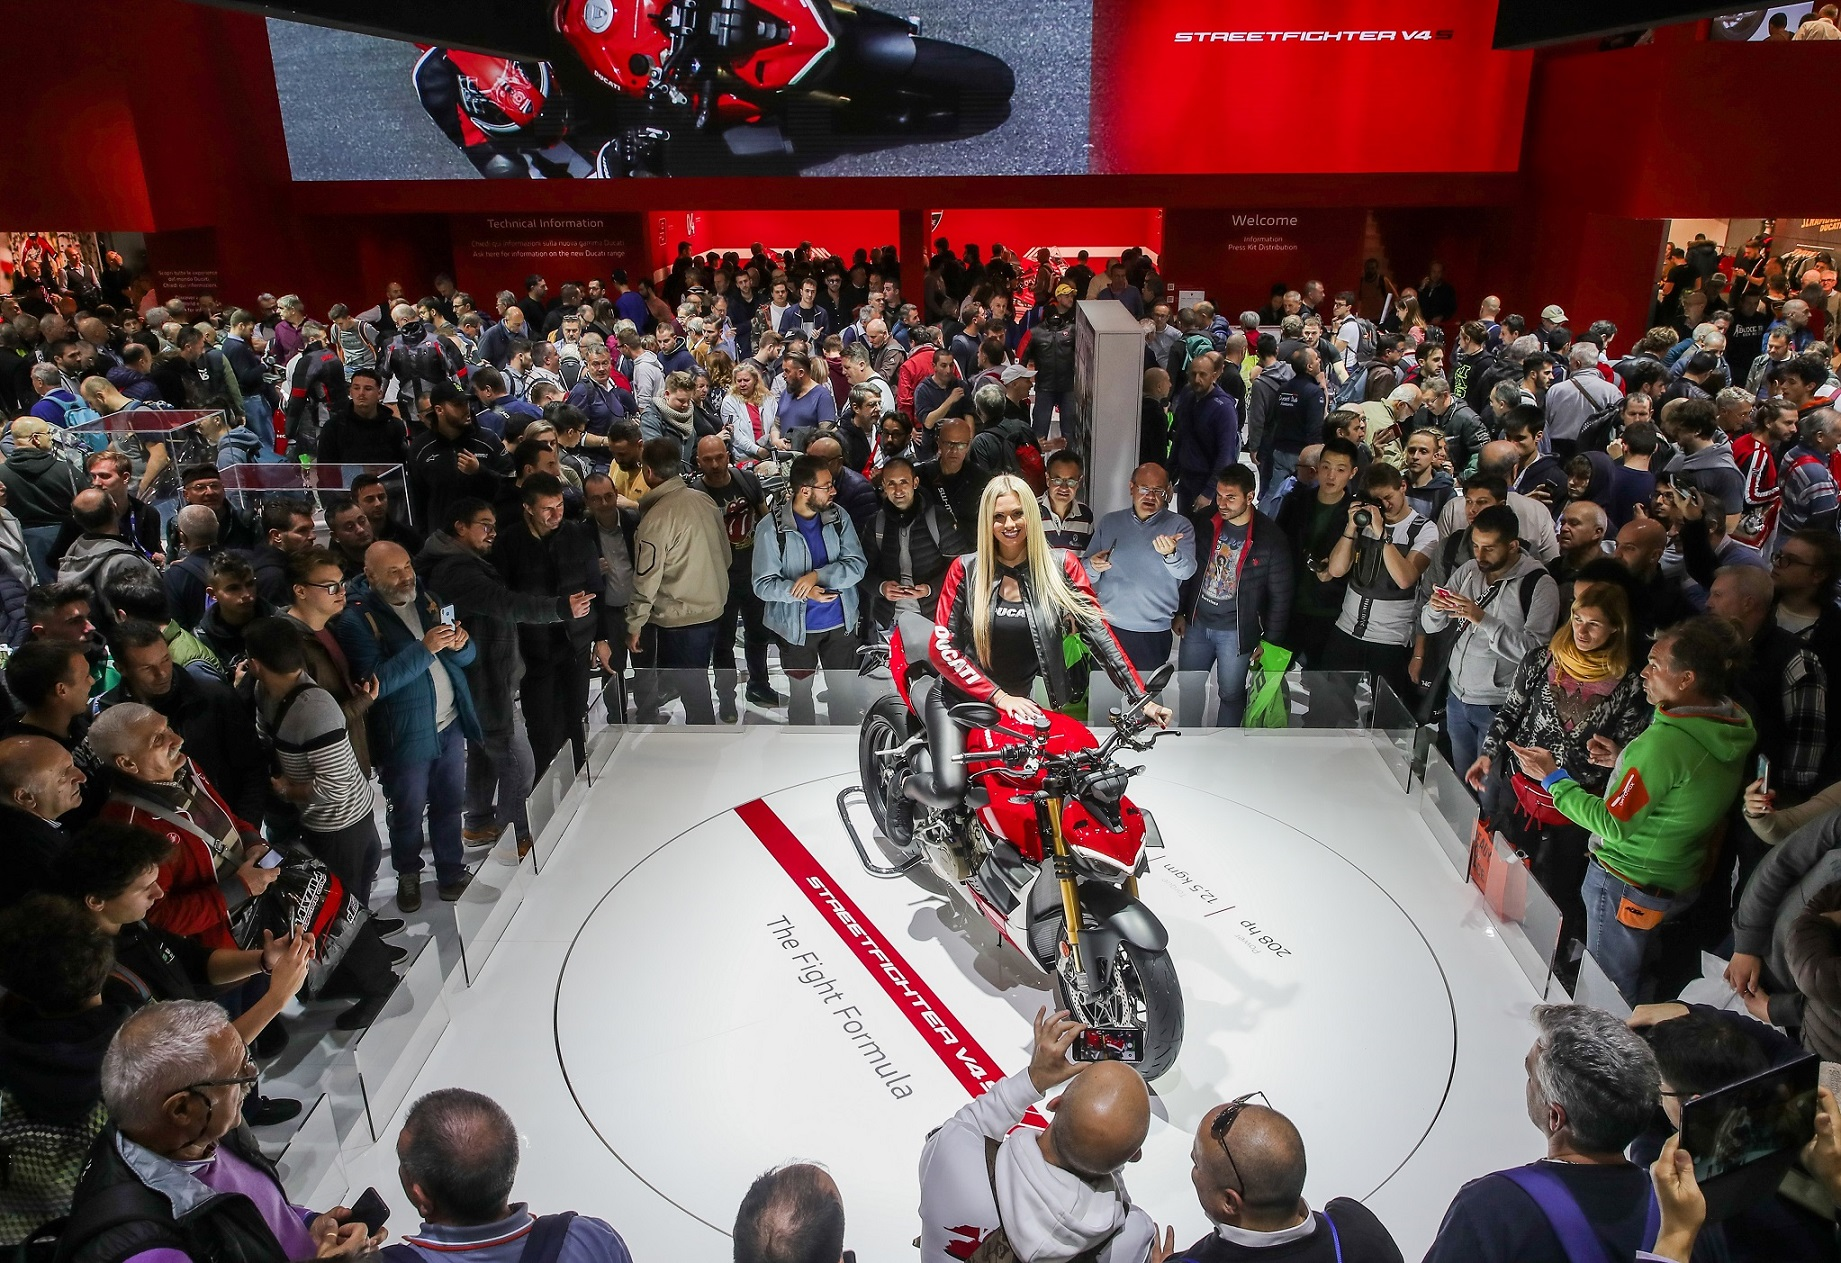 Ducati Streetfighter V4 at EICMA 2019